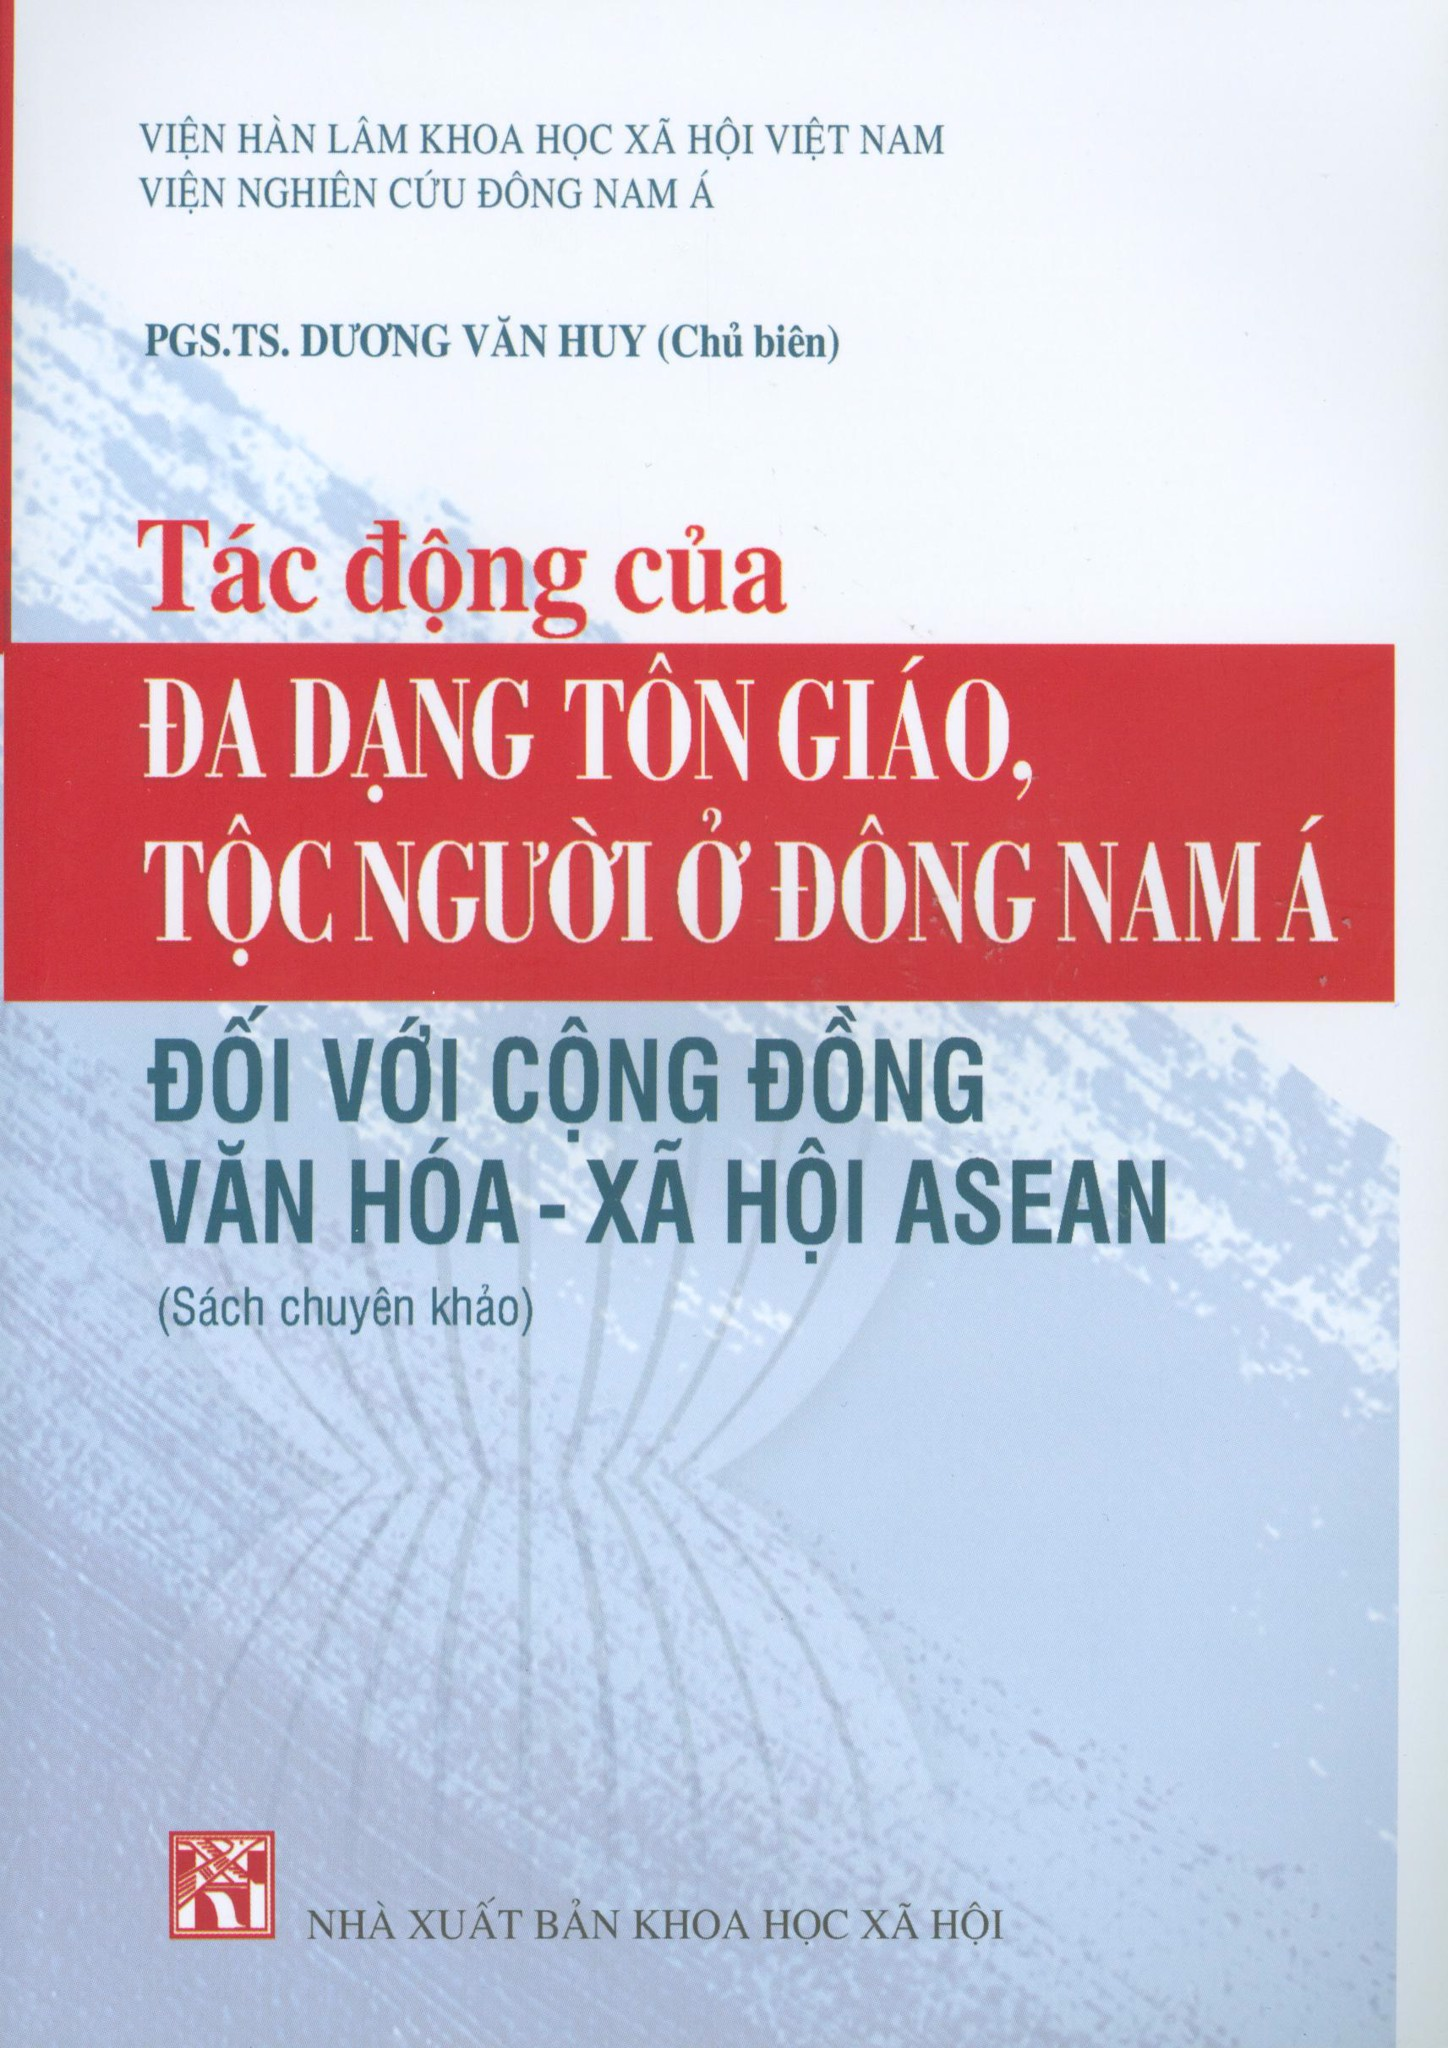 Tác động của đa dạng tôn giáo, tộc người ở Đông Nam Á đối với cộng đồng văn hóa - xã hội ASEAN/Impacts of religious and ethnic diversity in Southeast Asia on the ASEAN socio-cultural community